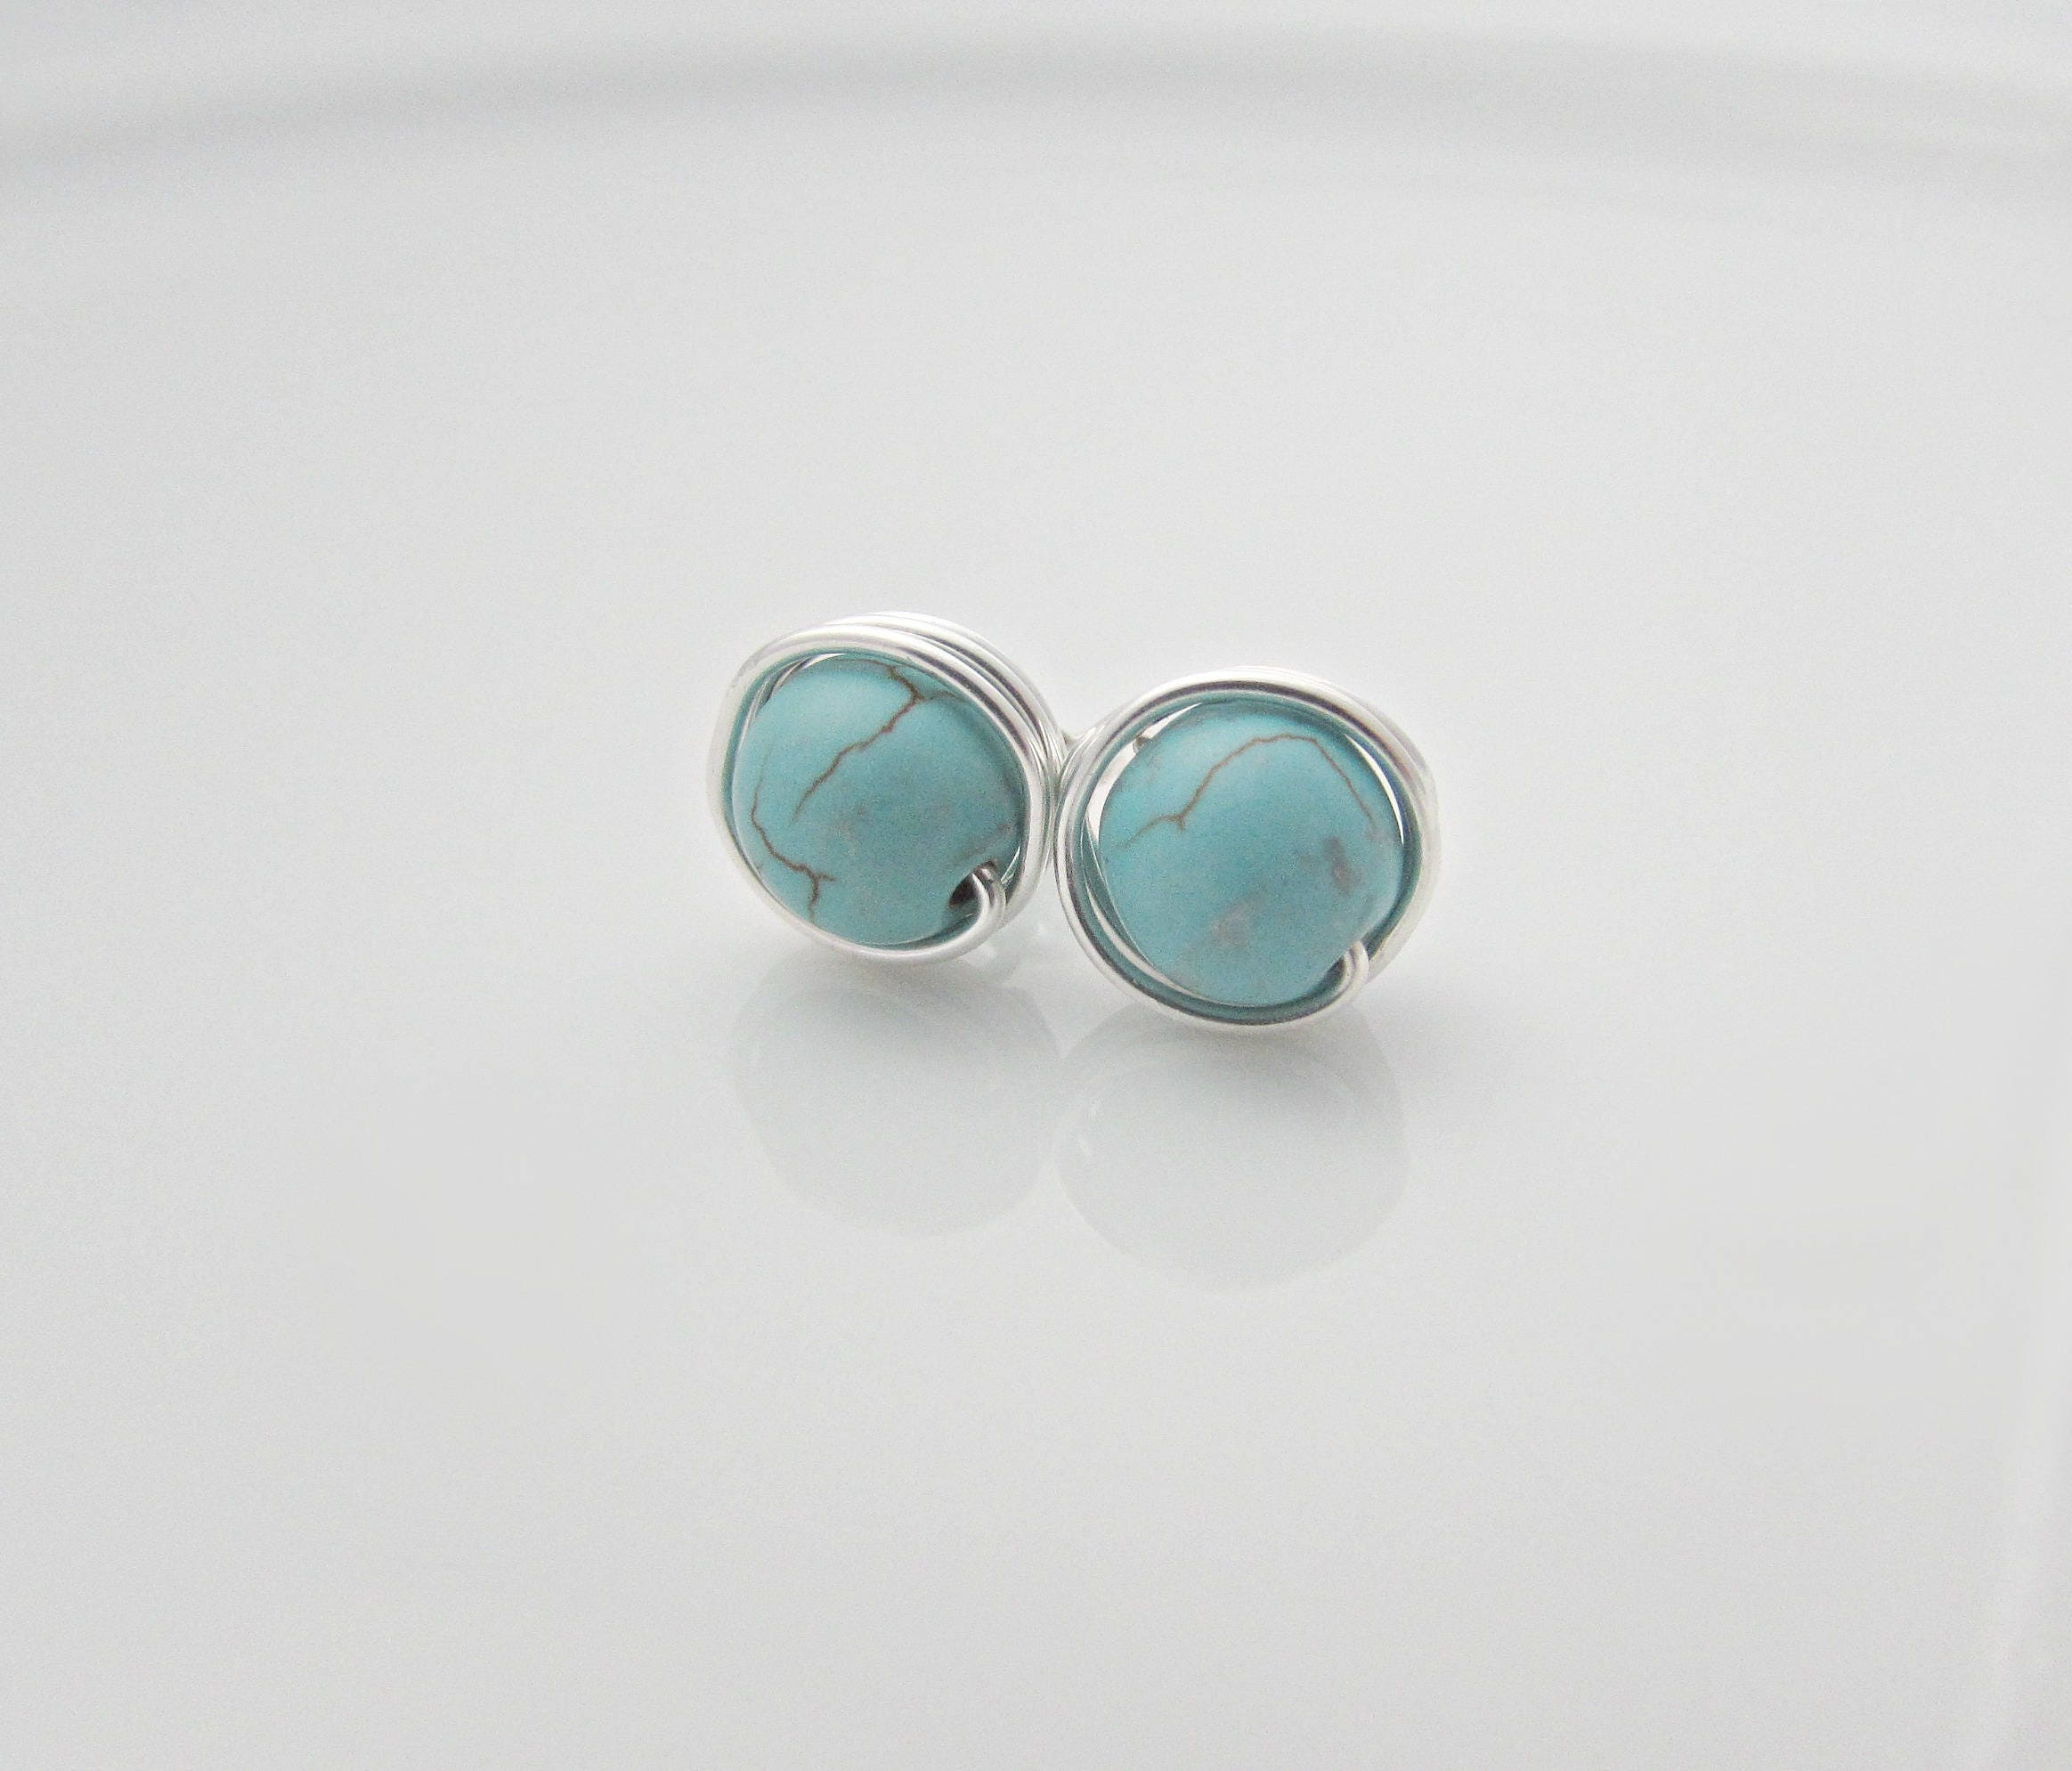 products earrings pearl turquoise large stud in nestled drop tear